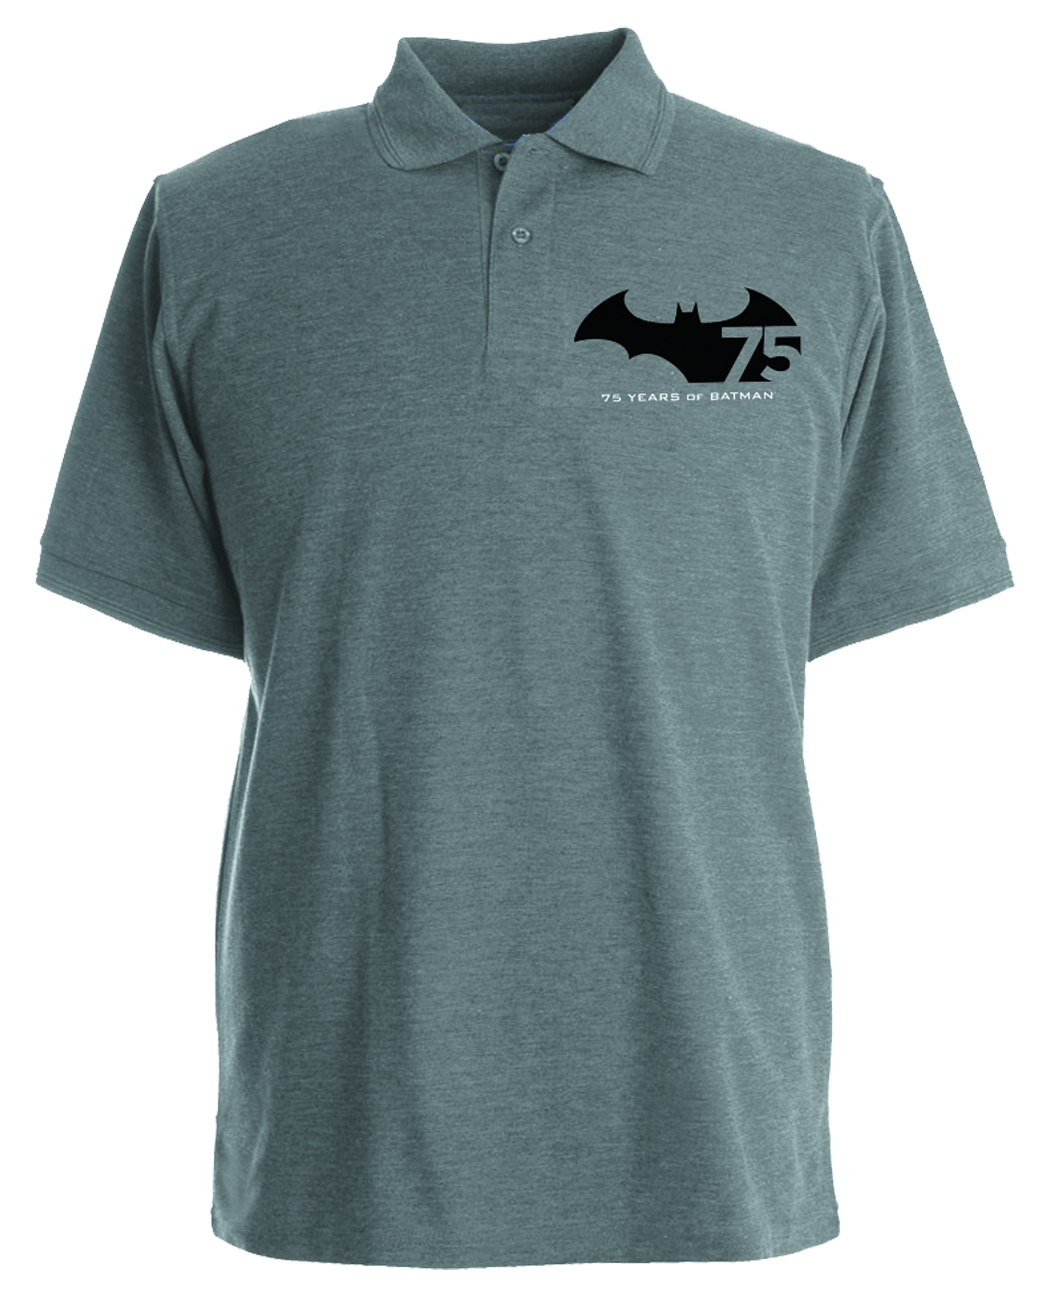 BATMAN 75TH ANNIVERSARY POLO LG